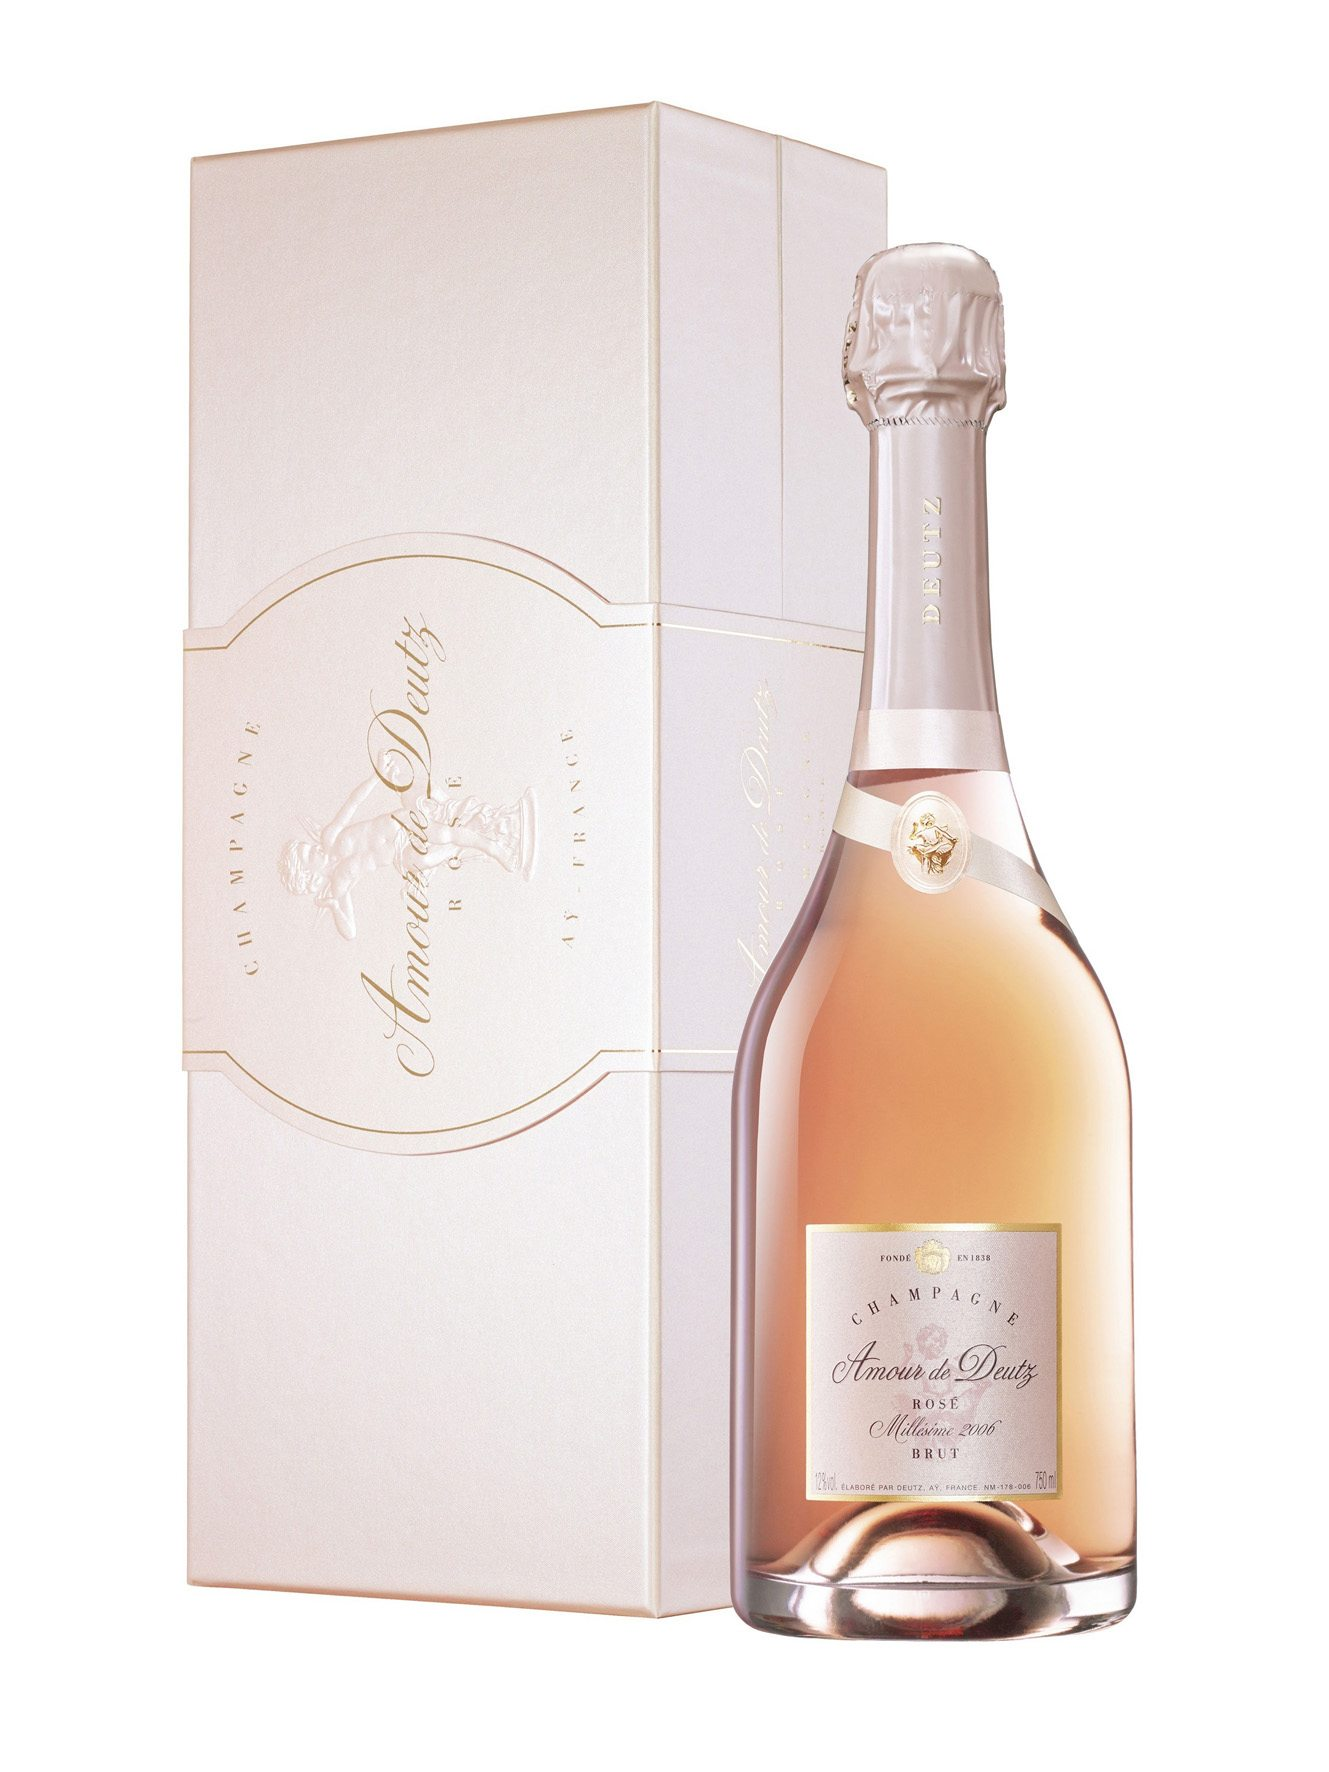 Champagne AMOUR DE DEUTZ ROSE' 2006